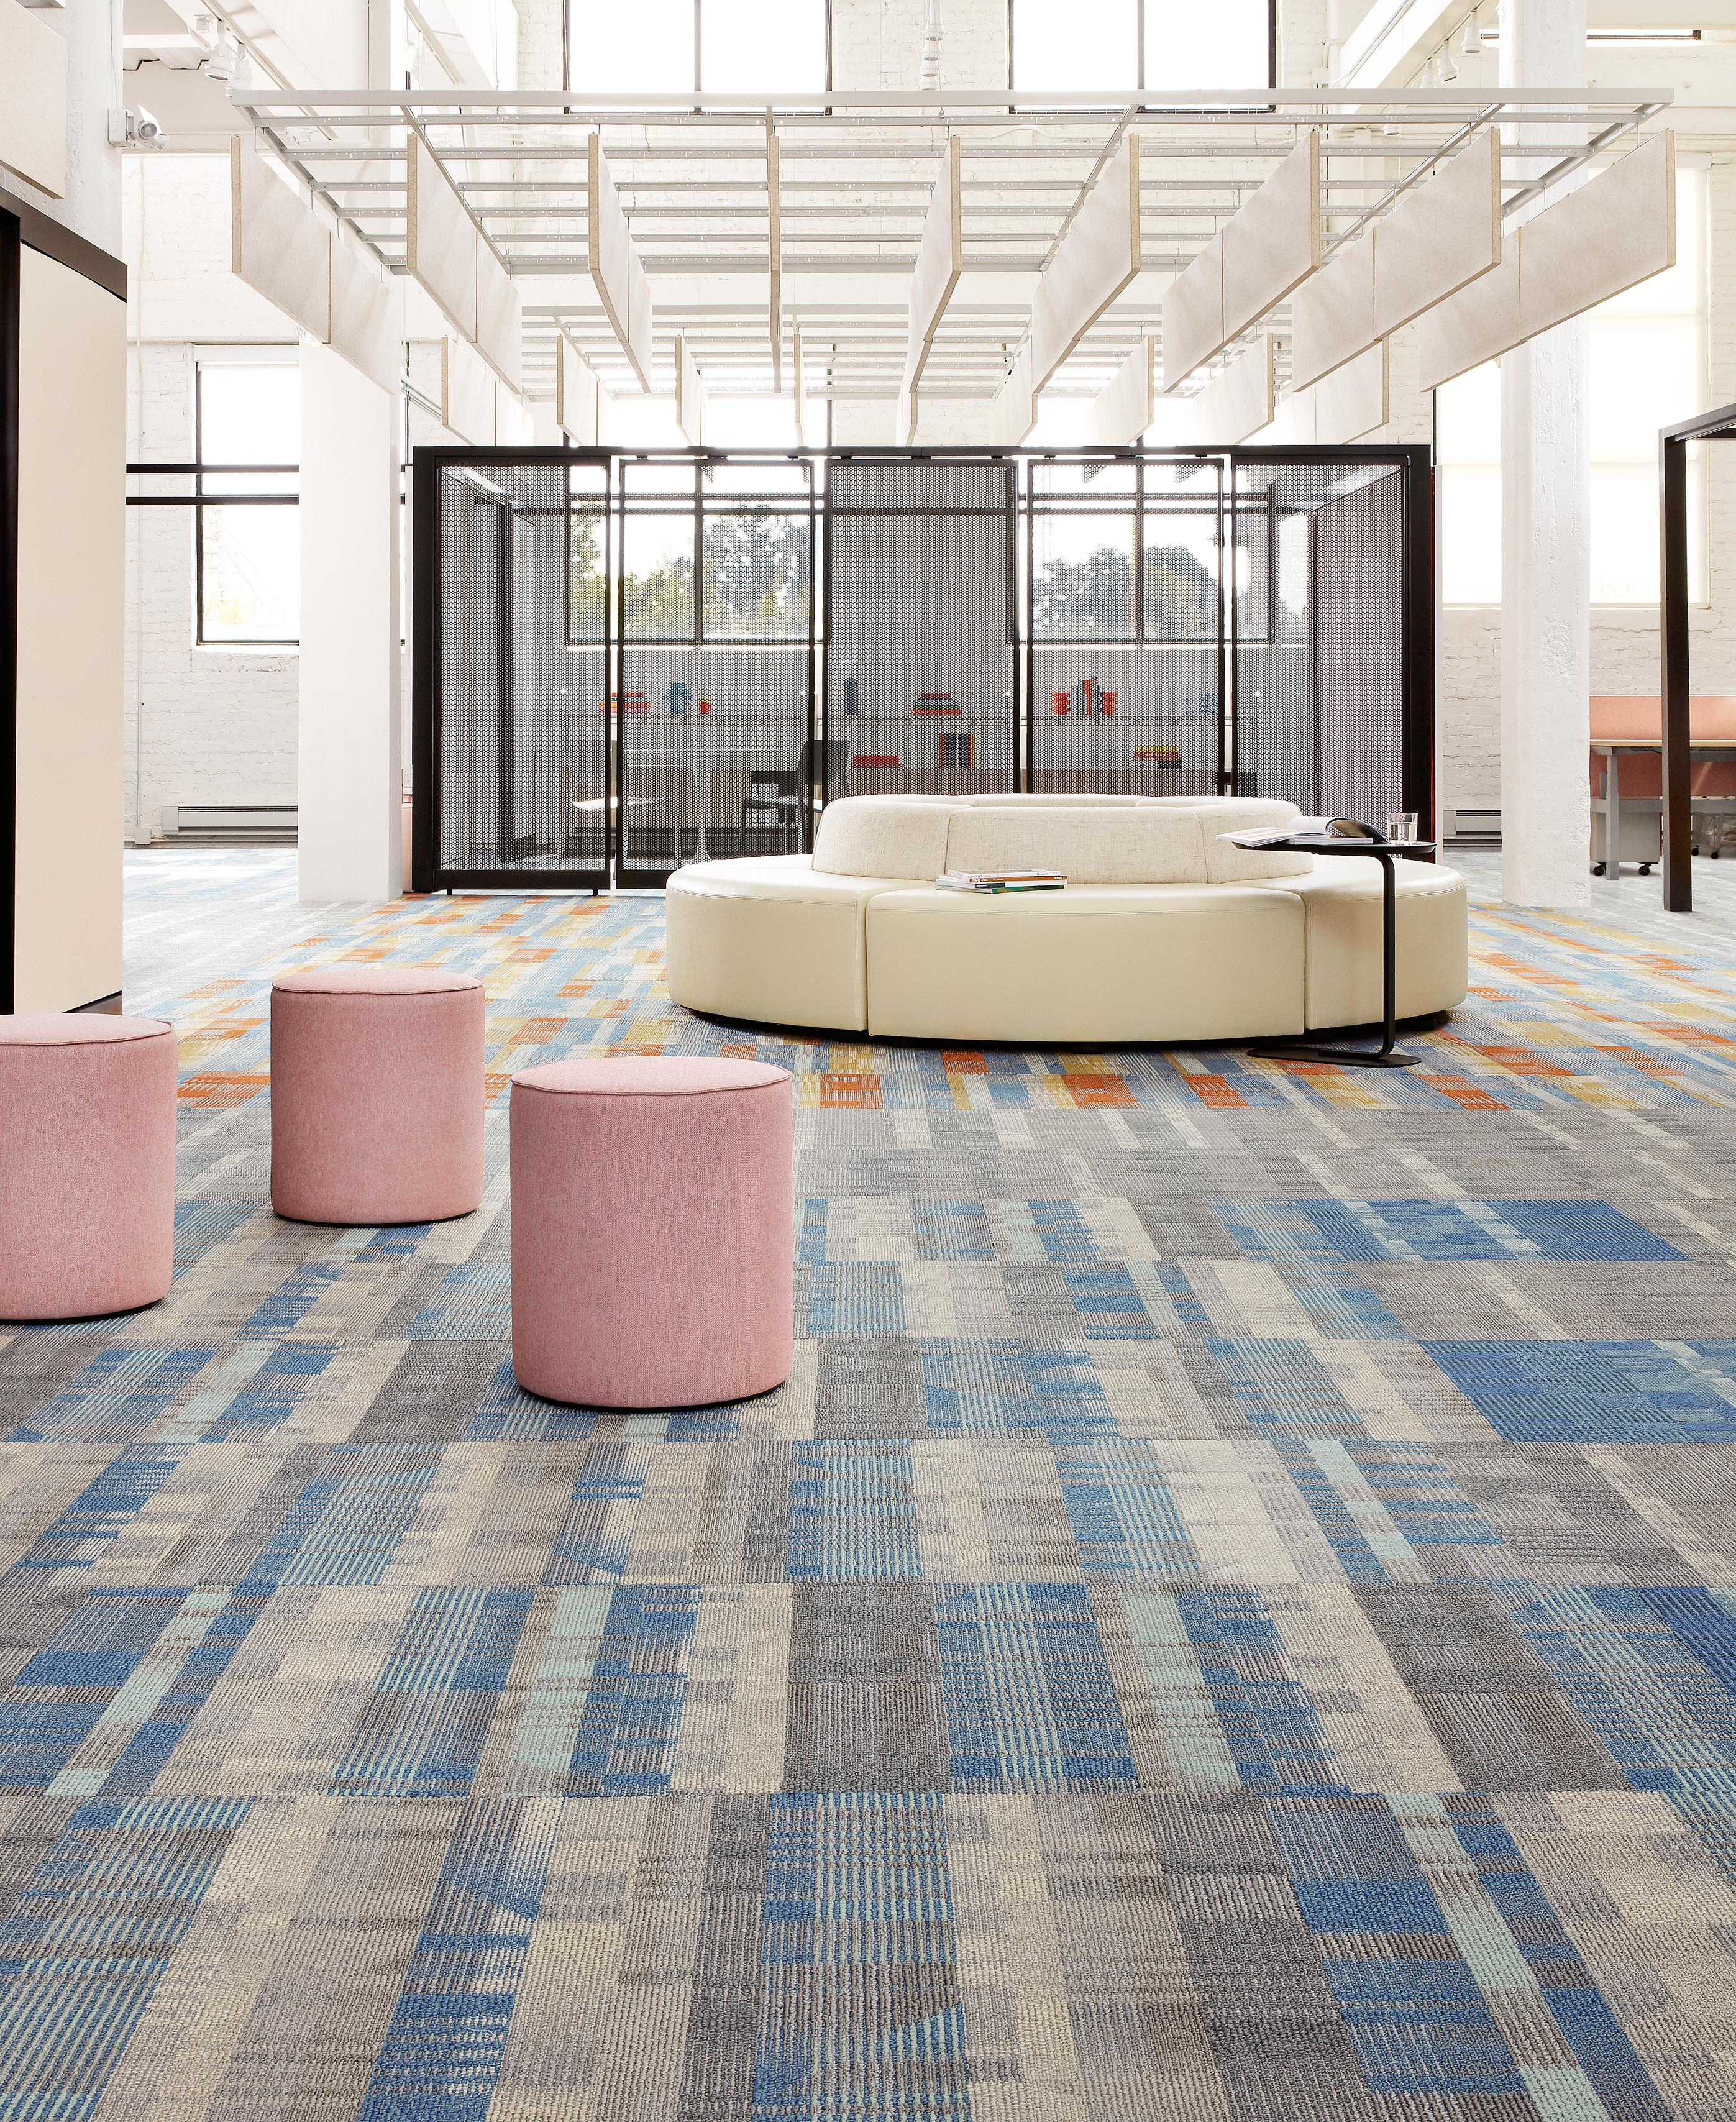 The Campus carpet tile collection was inspired by the Bauhaus aesthetic.